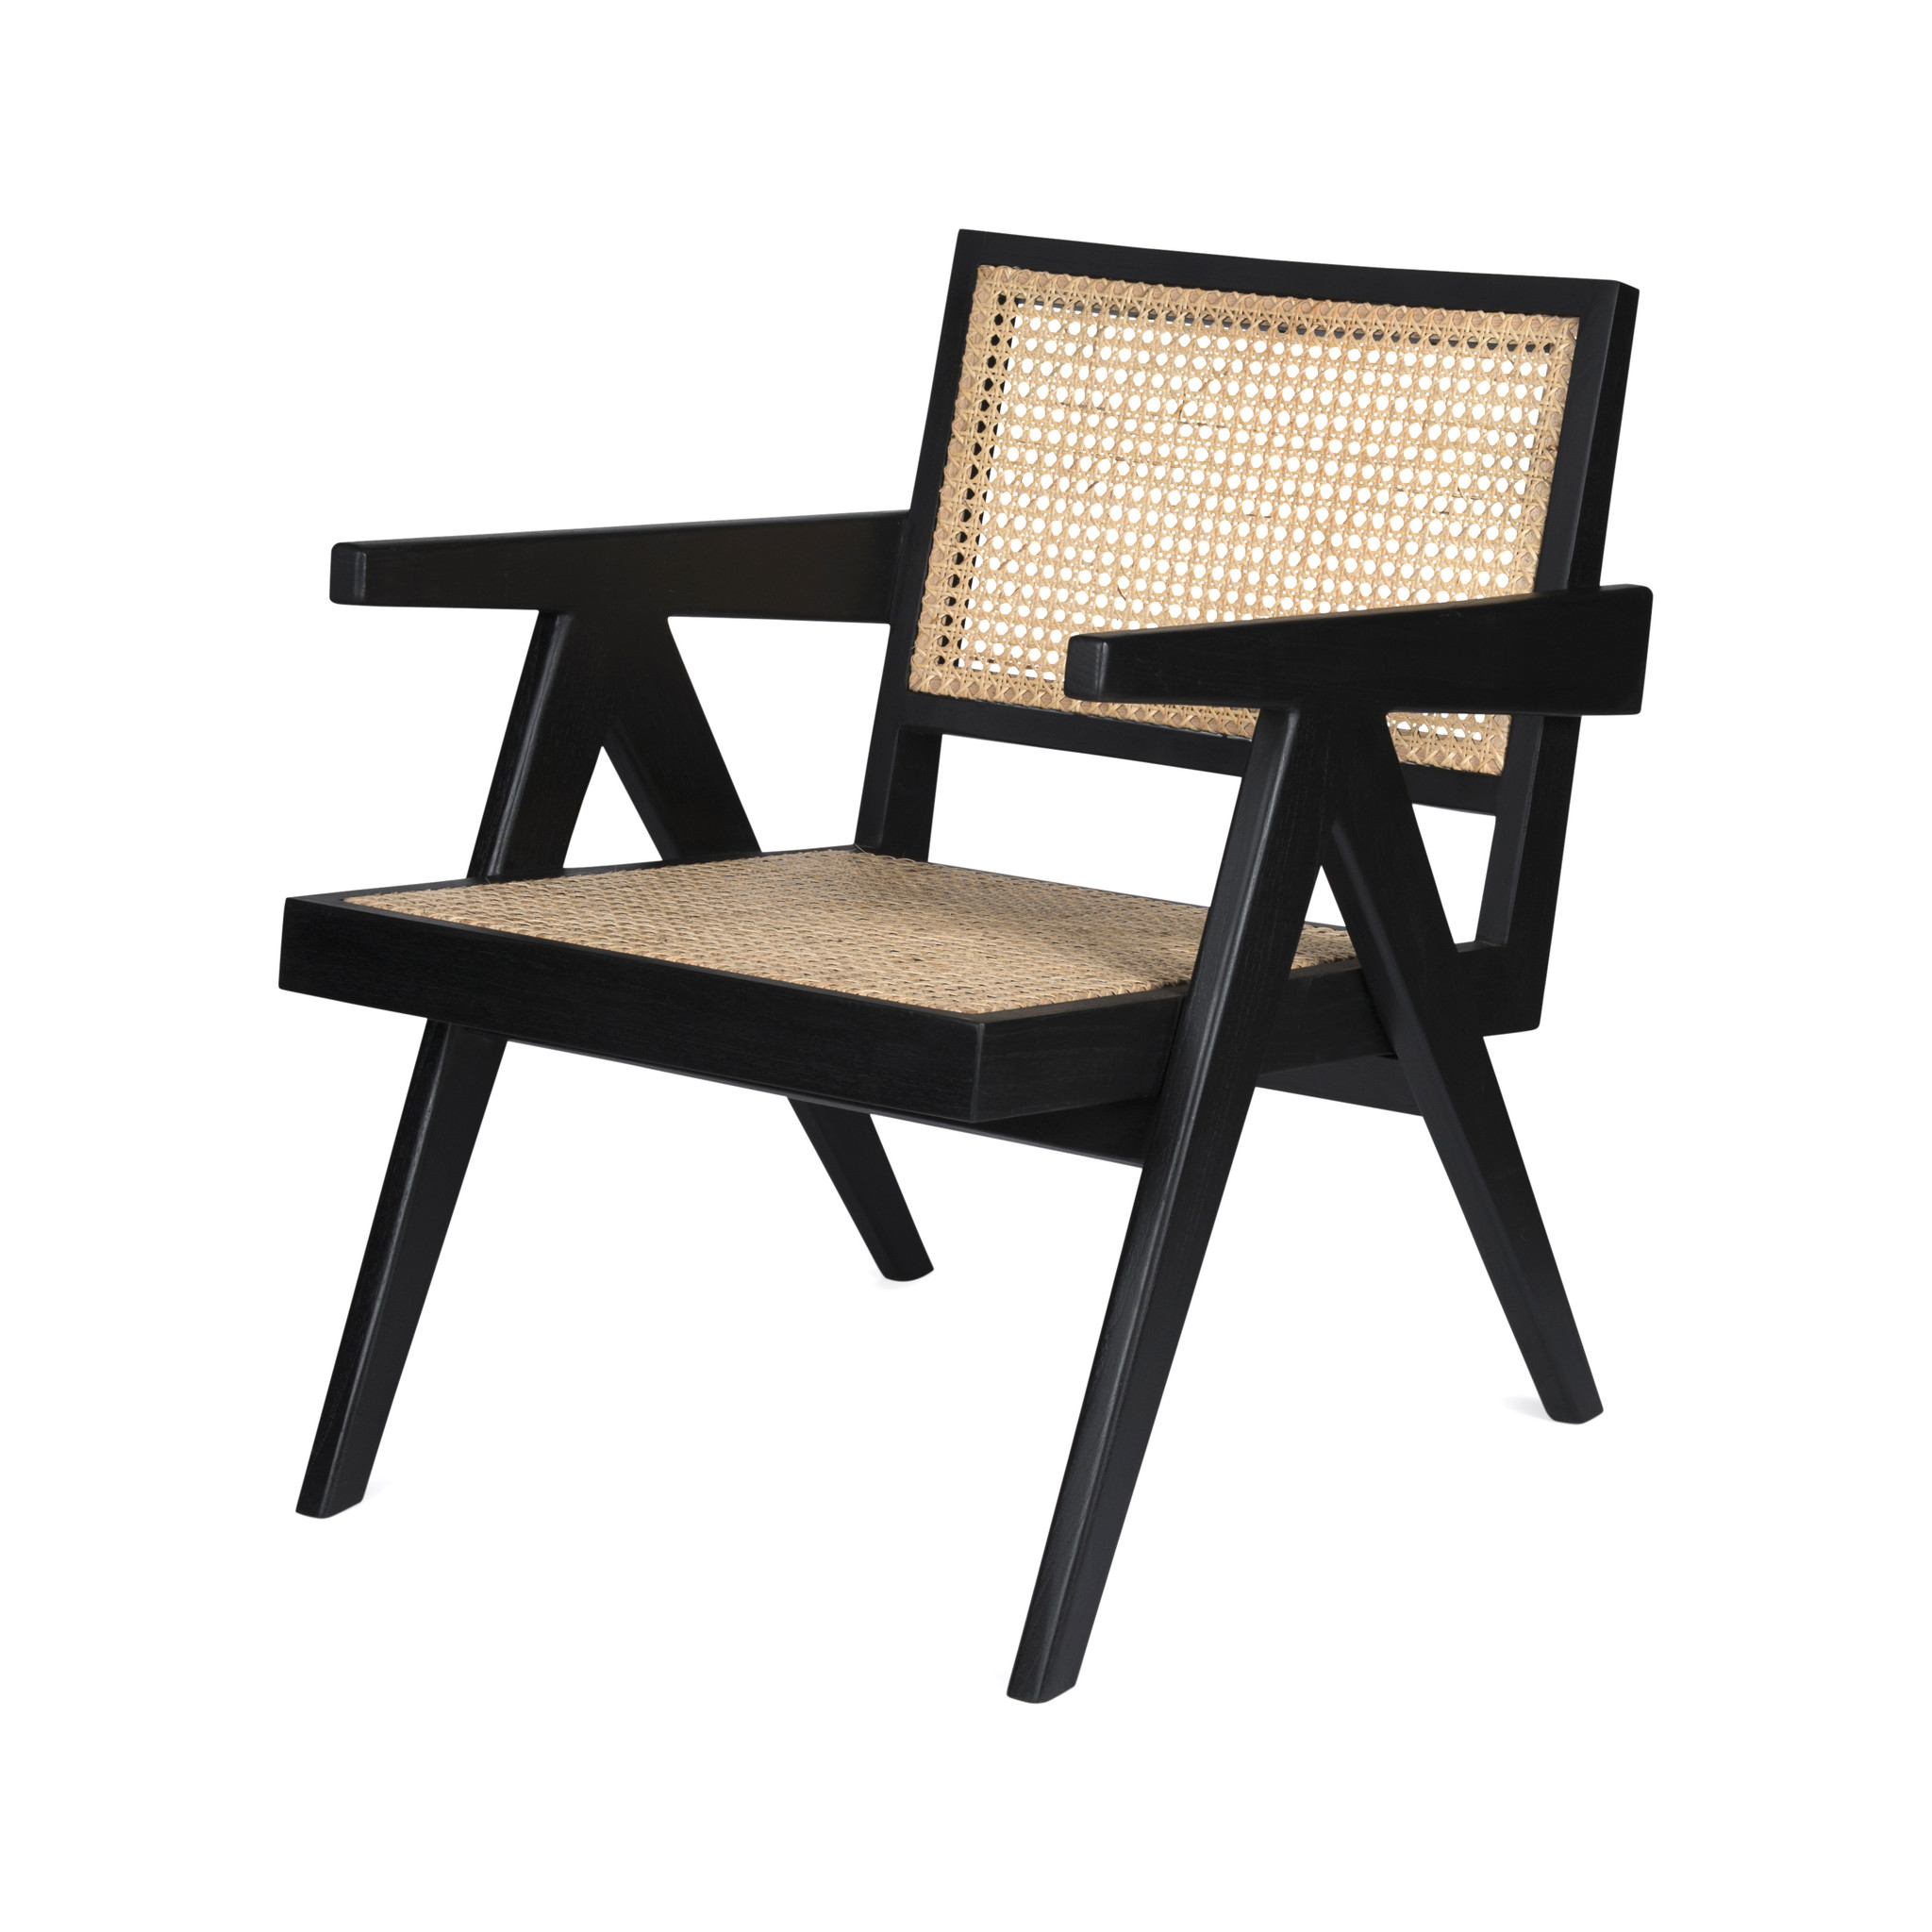 Easy Lounge Chair - Charcoal Black-1